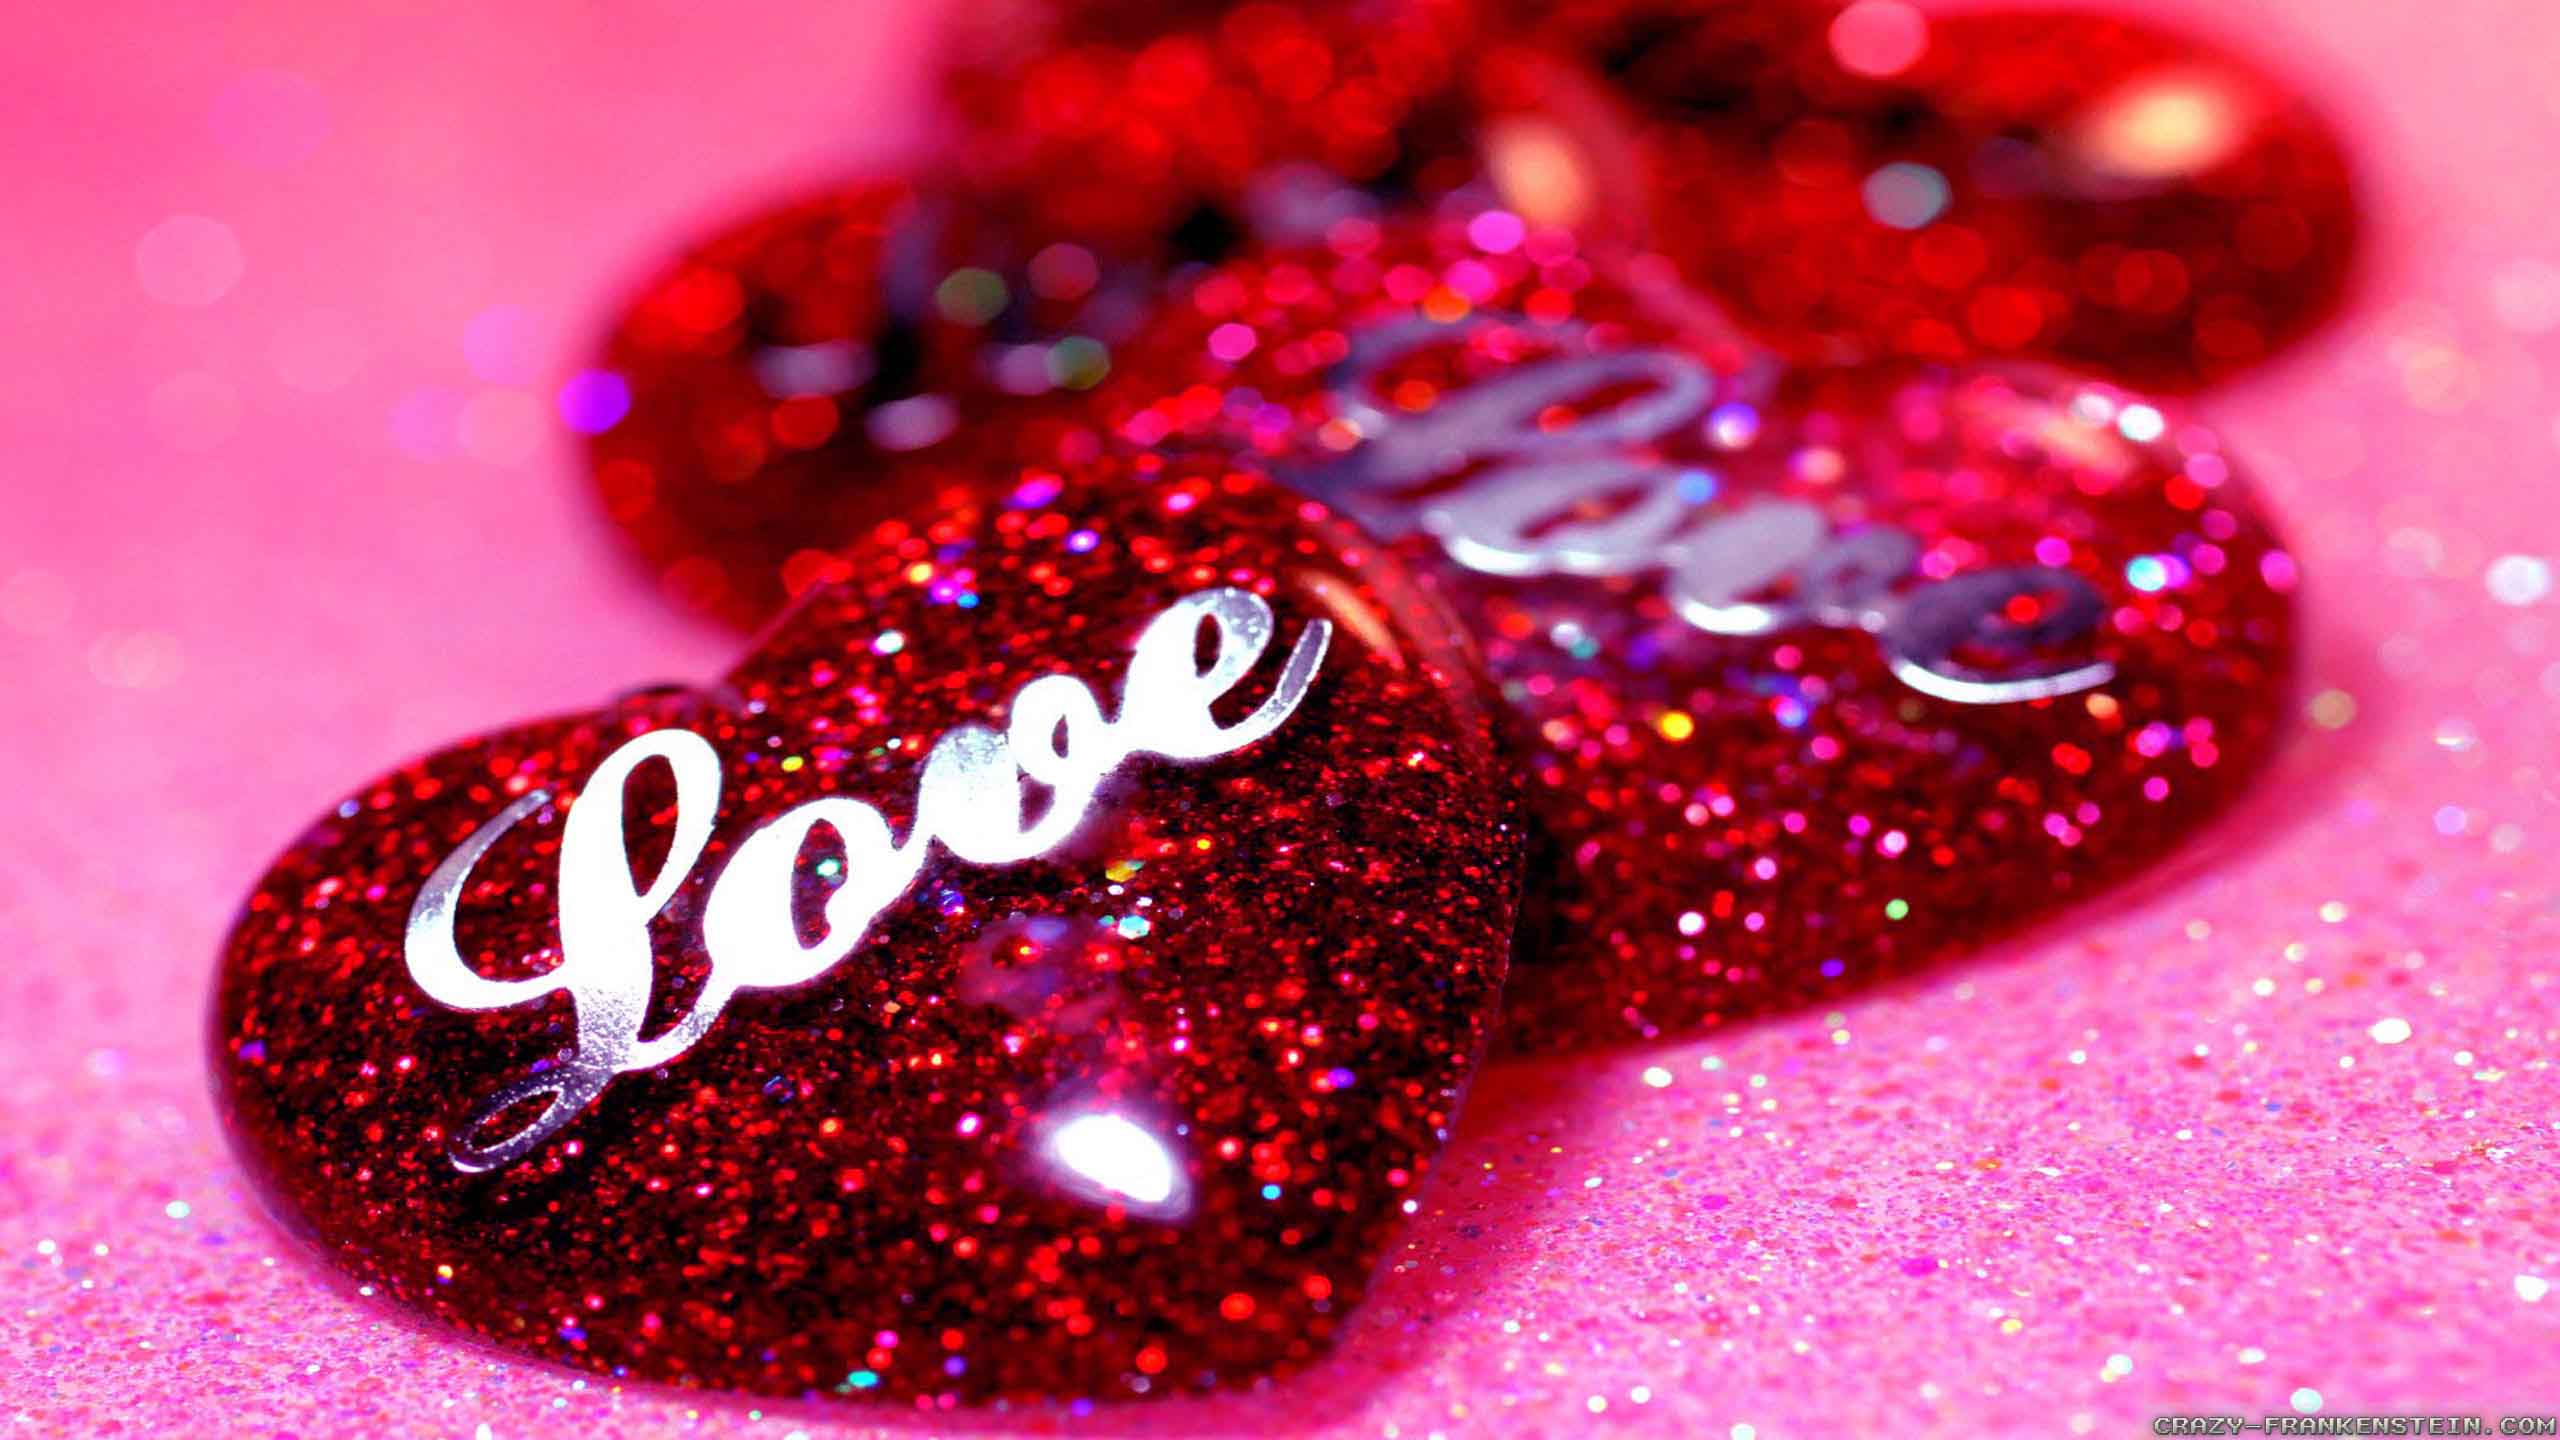 Latest love wallpapers hd download hd free wallpapers download